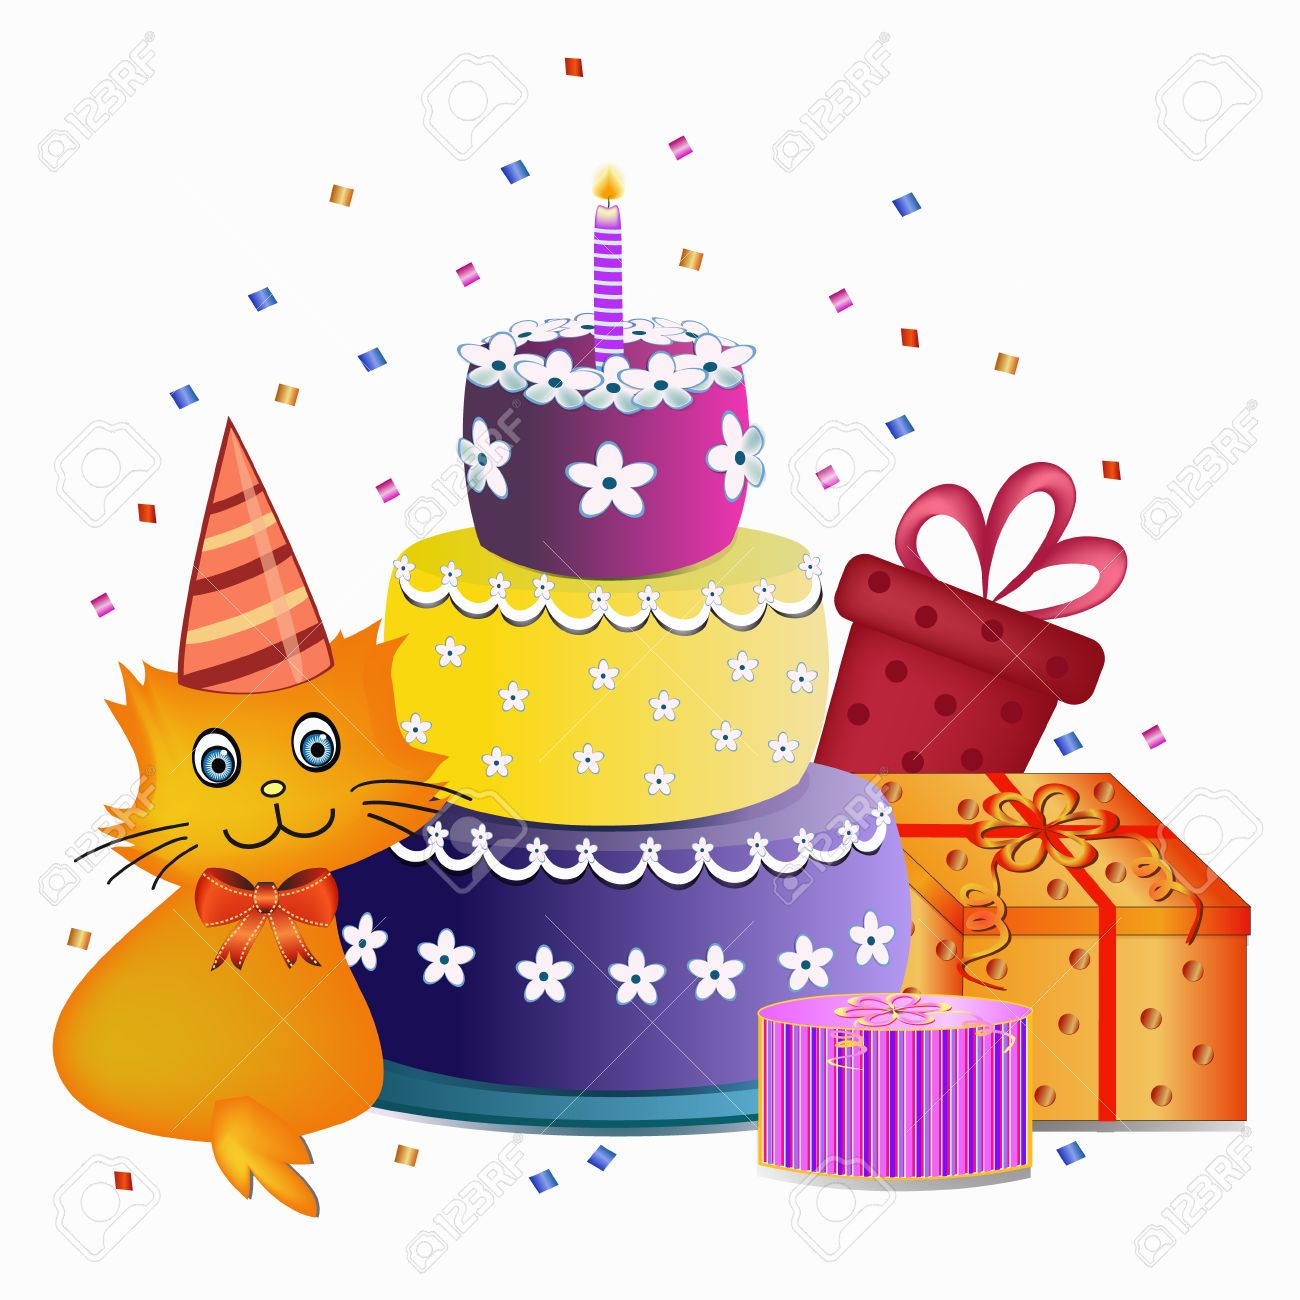 colorful happy birthday cake cat and present illustration royalty